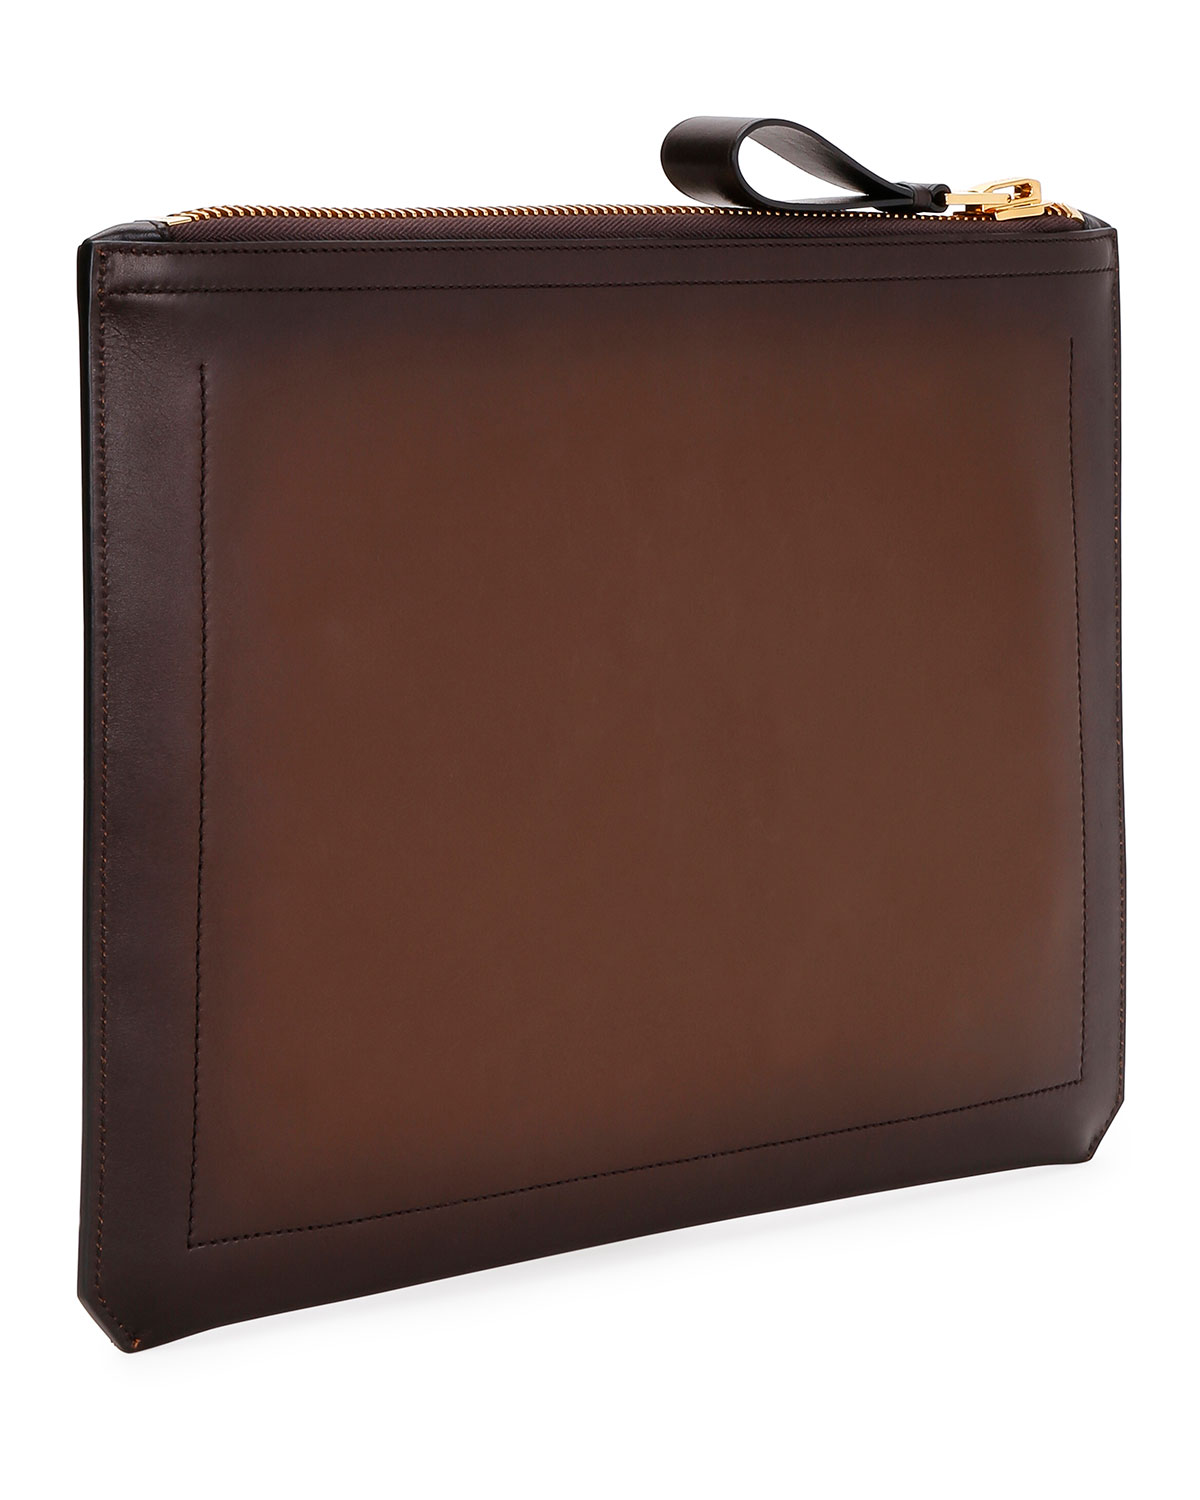 Tom Ford MEN'S ZIP-TOP LEATHER PORTFOLIO CASE